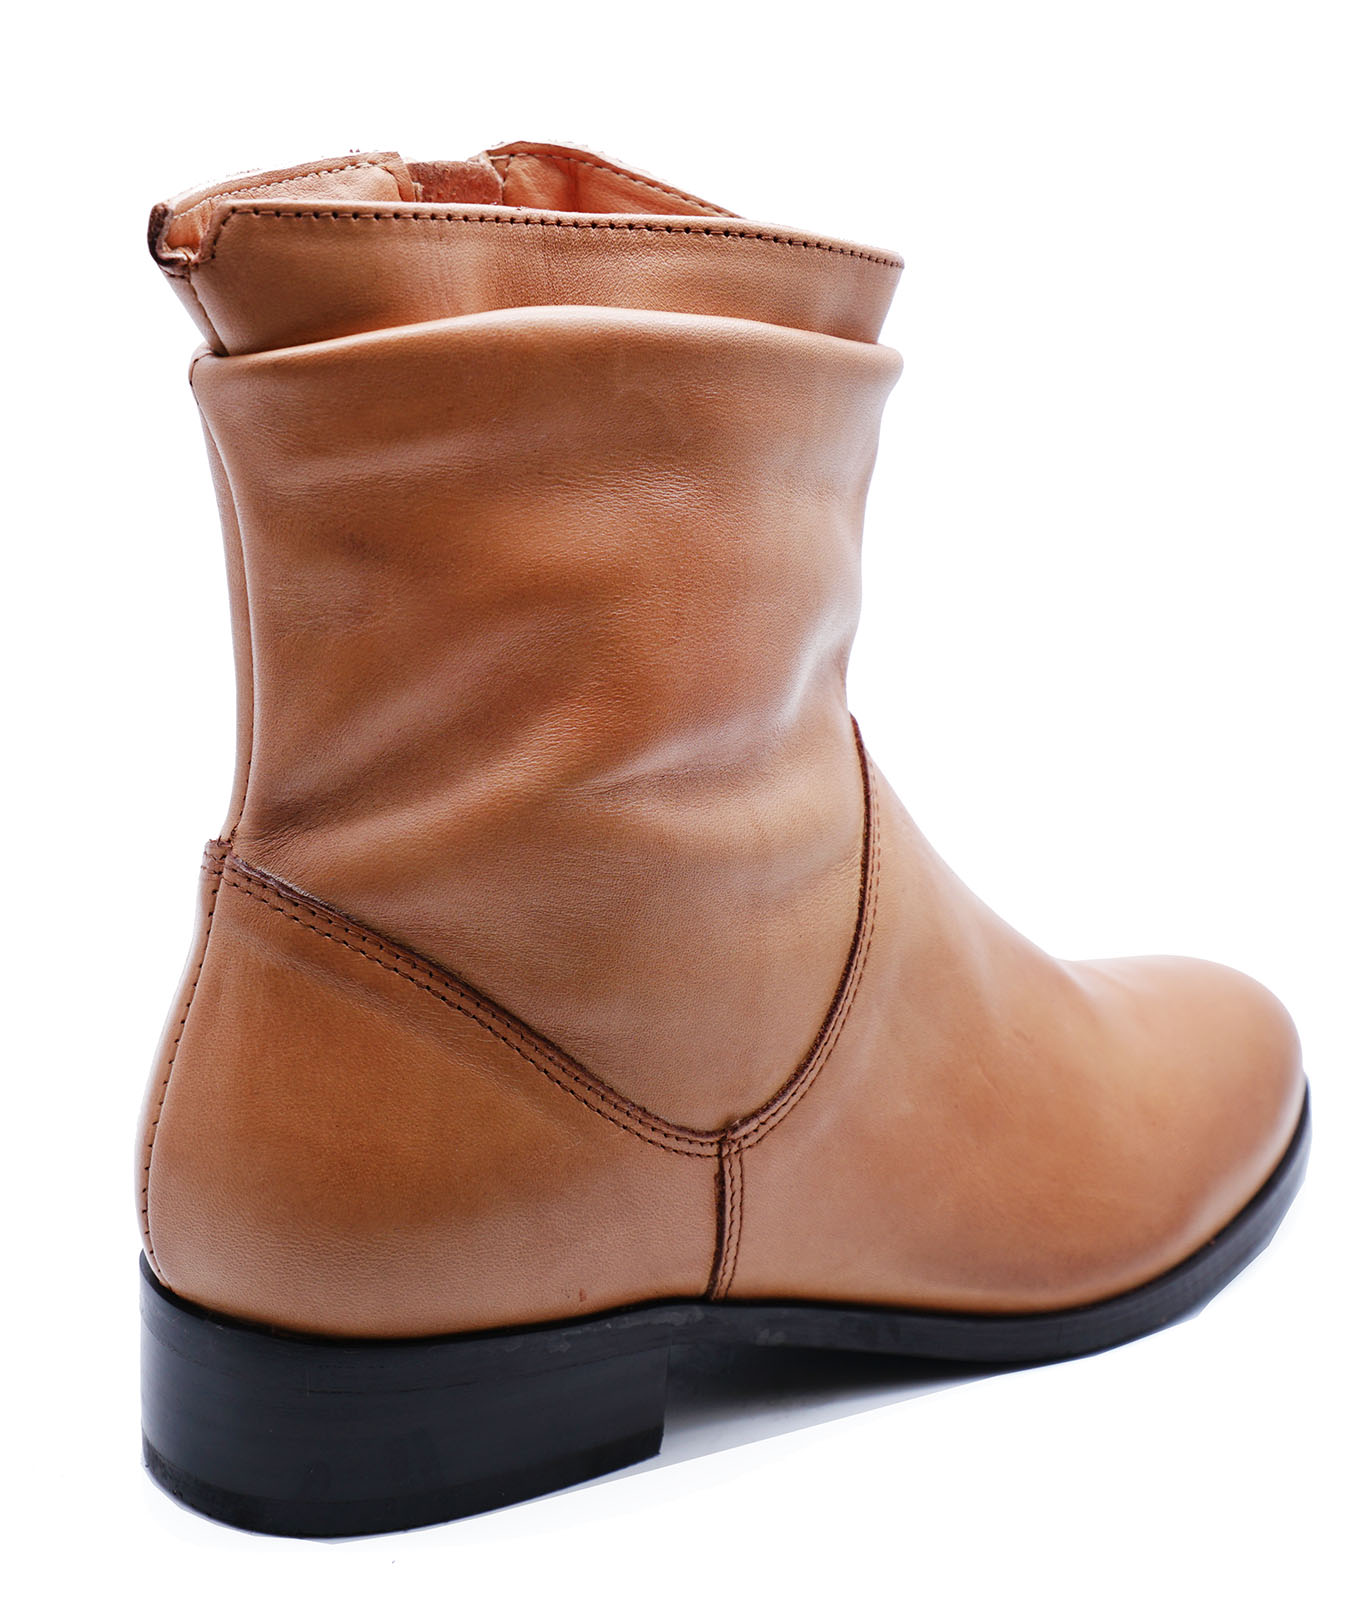 LADIES-FLAT-GENUINE-LEATHER-TAN-ZIP-UP-ANKLE-CALF-BOOTS-COMFY-SHOES-SIZES-2-9 thumbnail 44